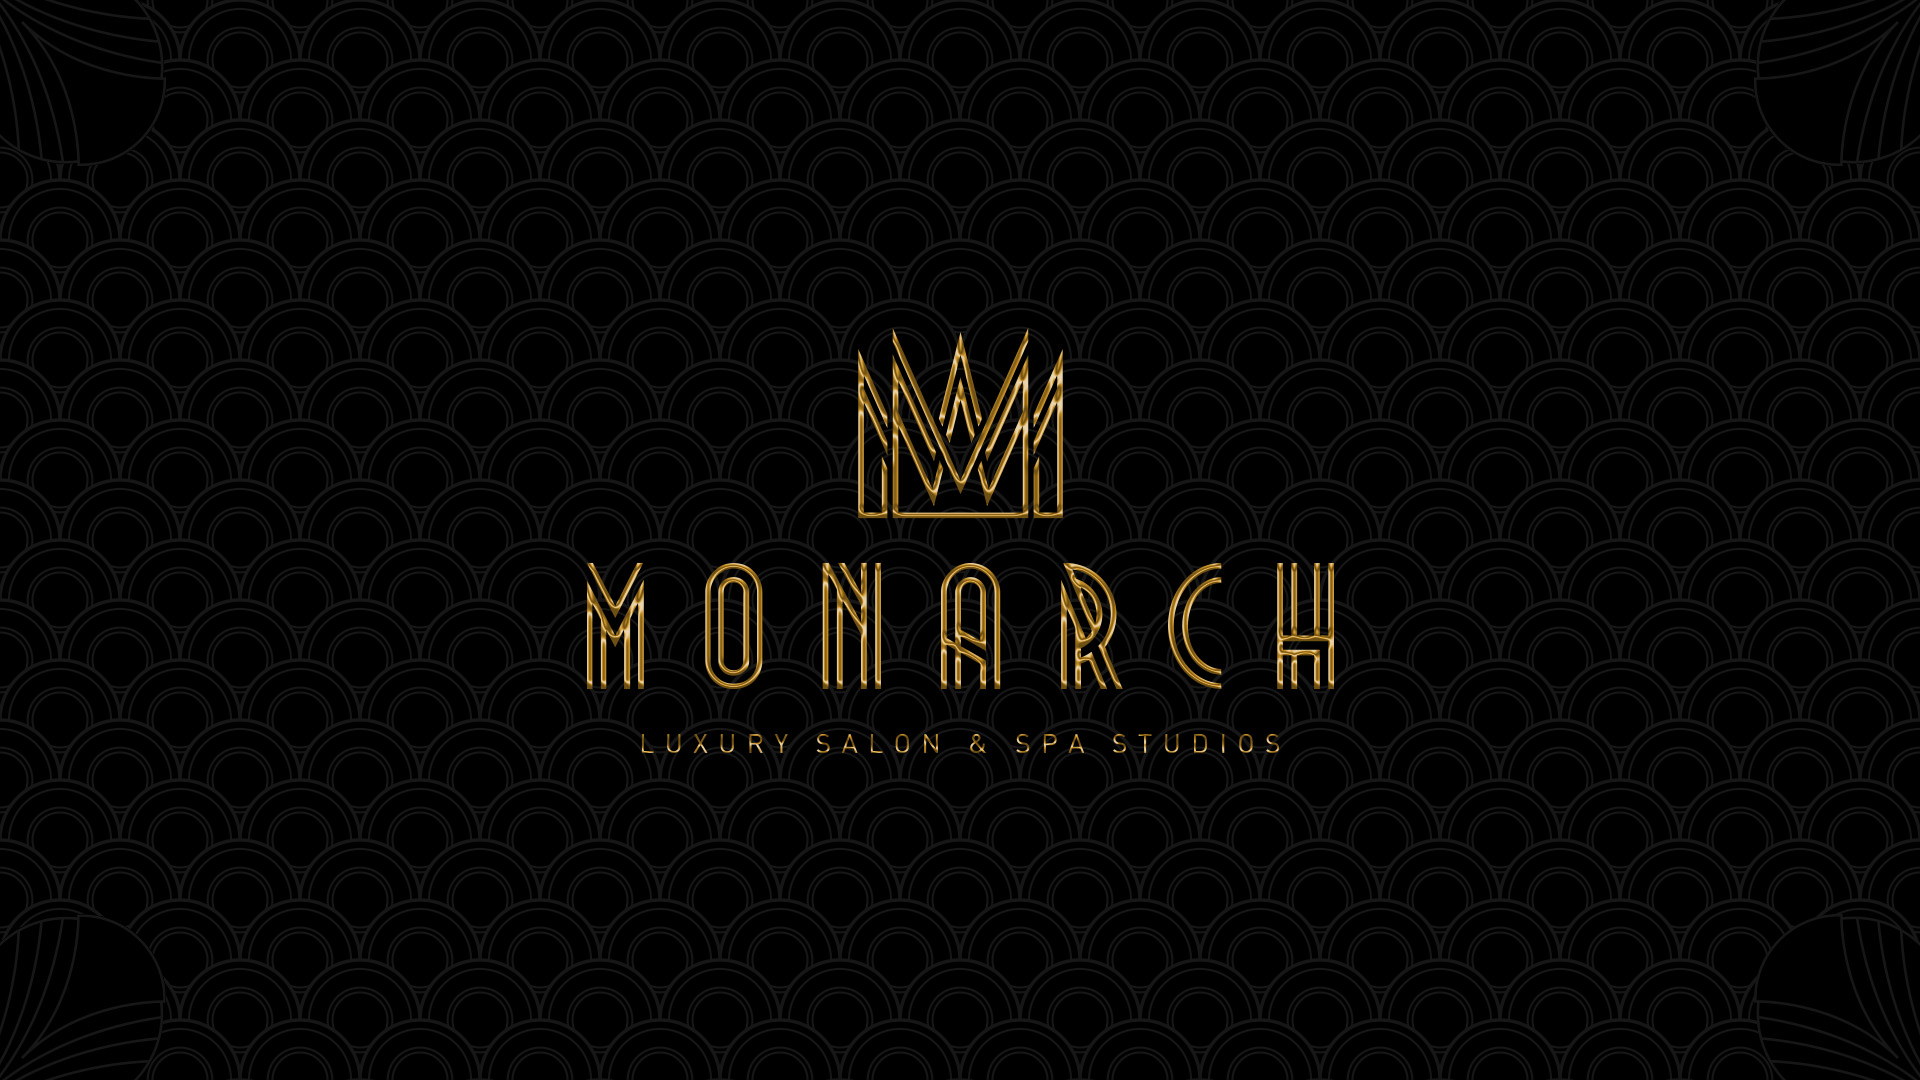 Monarch Luxury Studios on project related